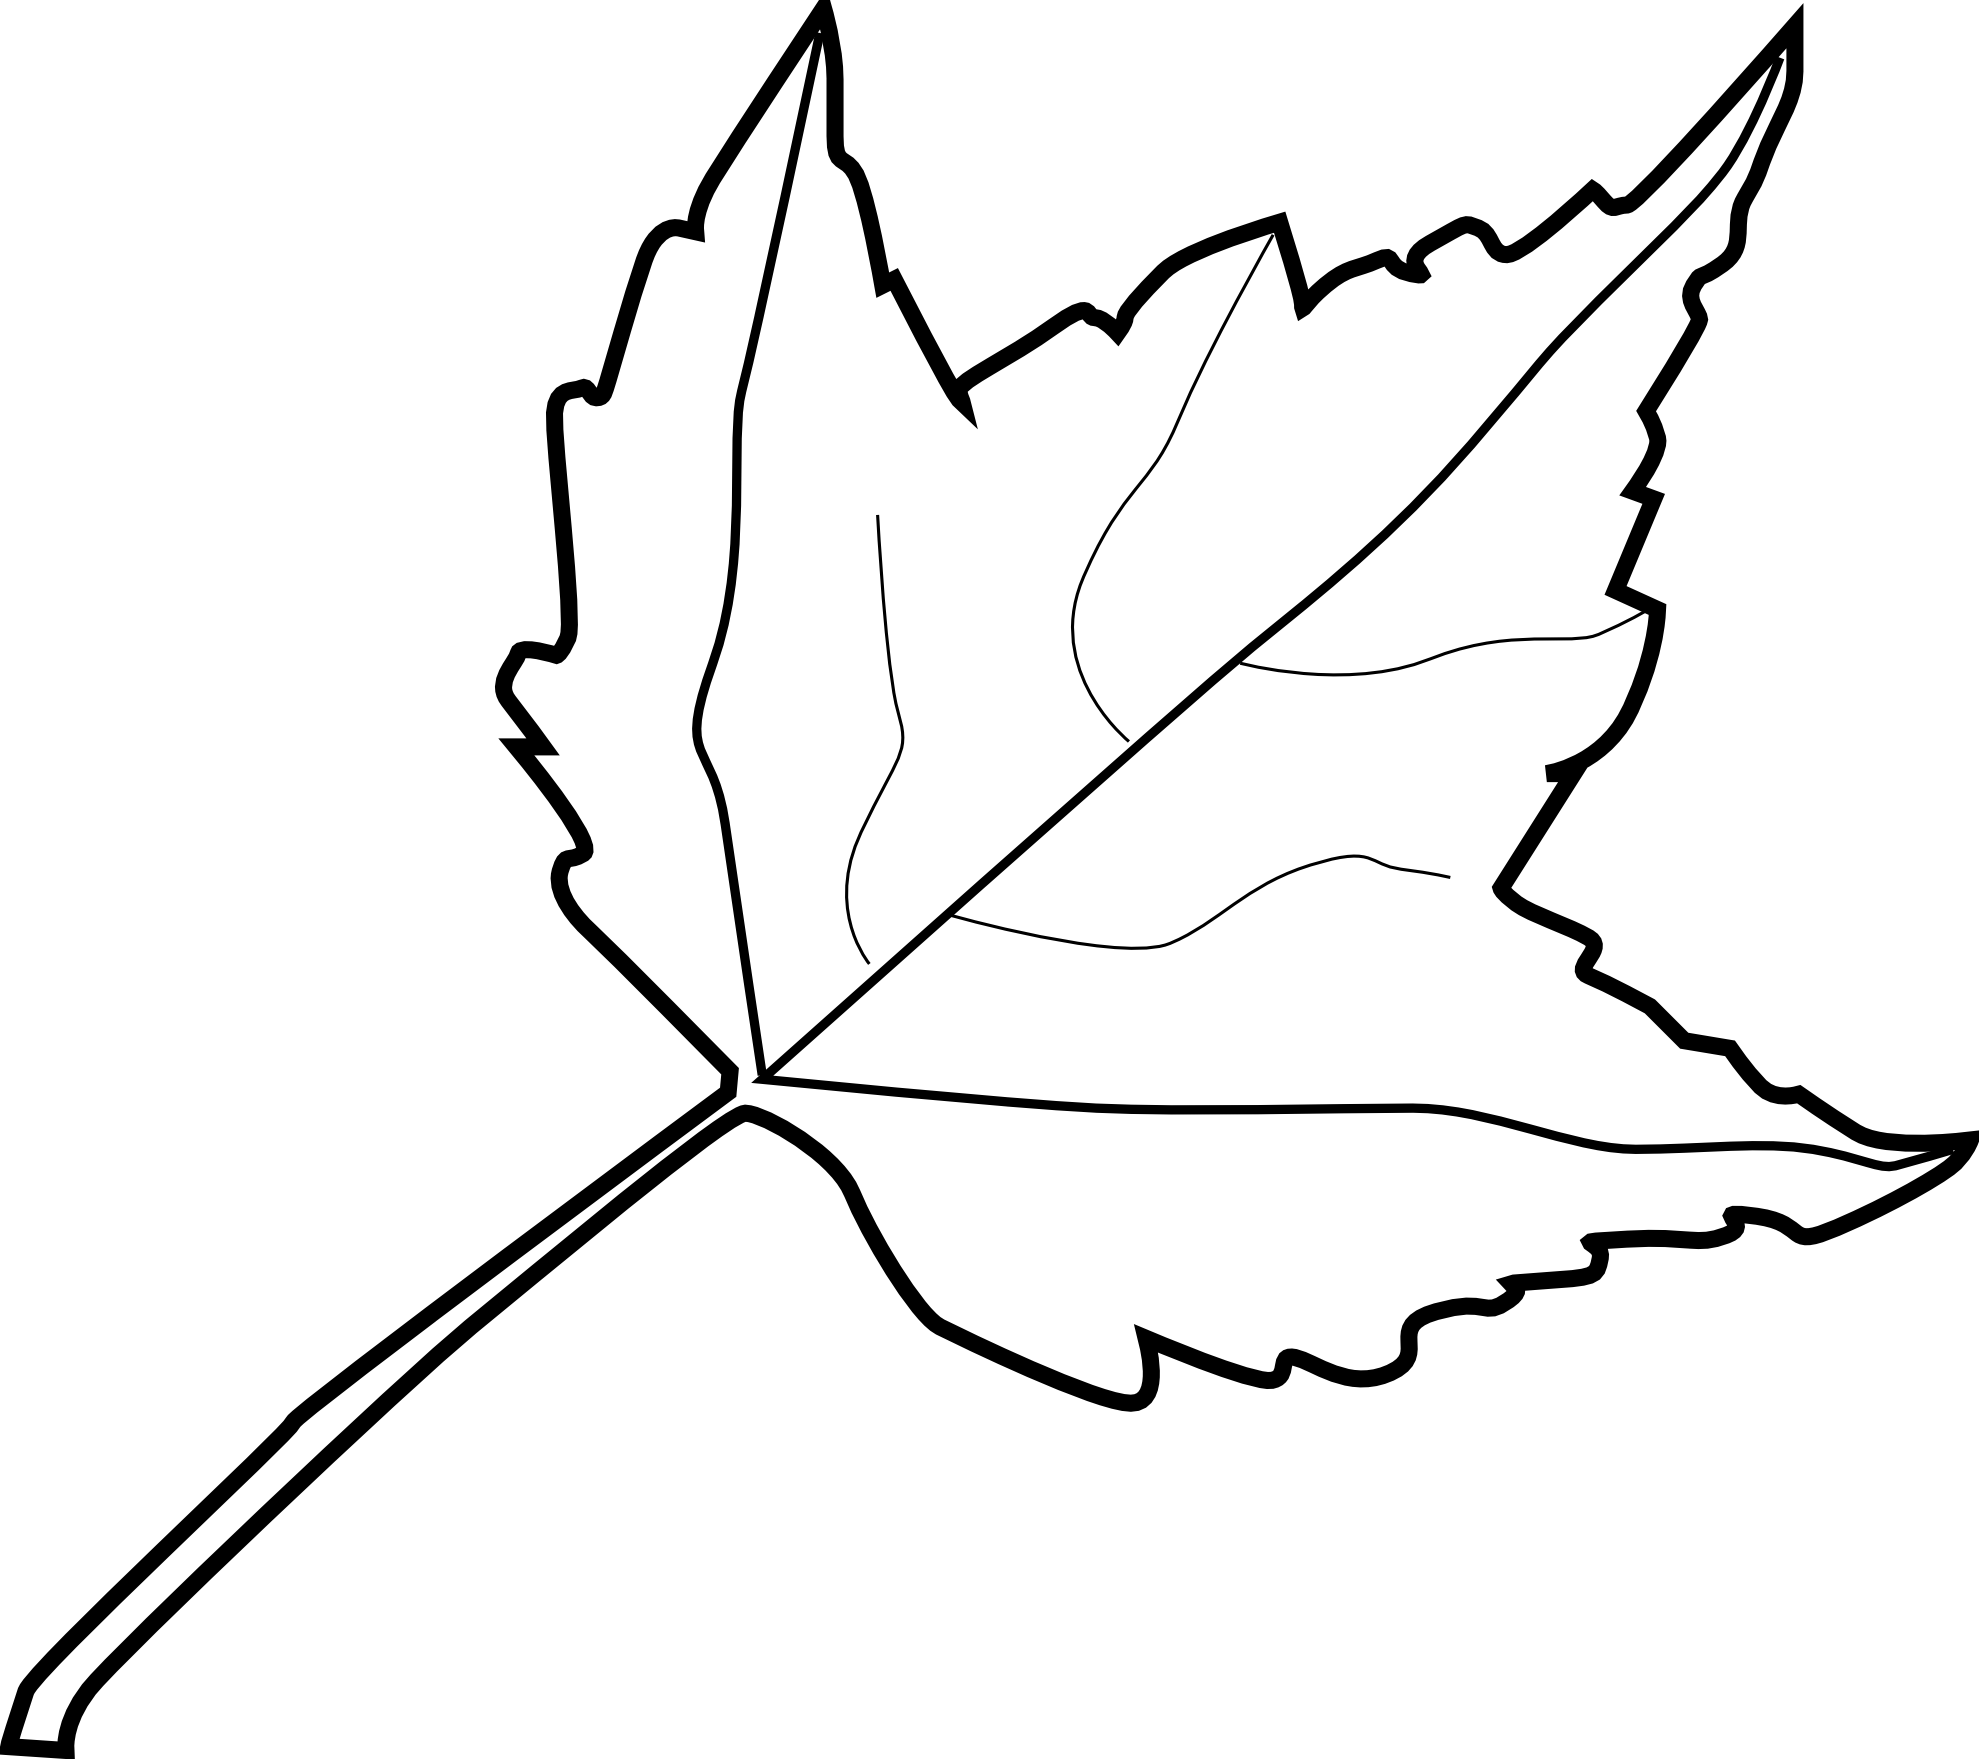 Xfig Line Drawing : Line drawing leaf clipart best